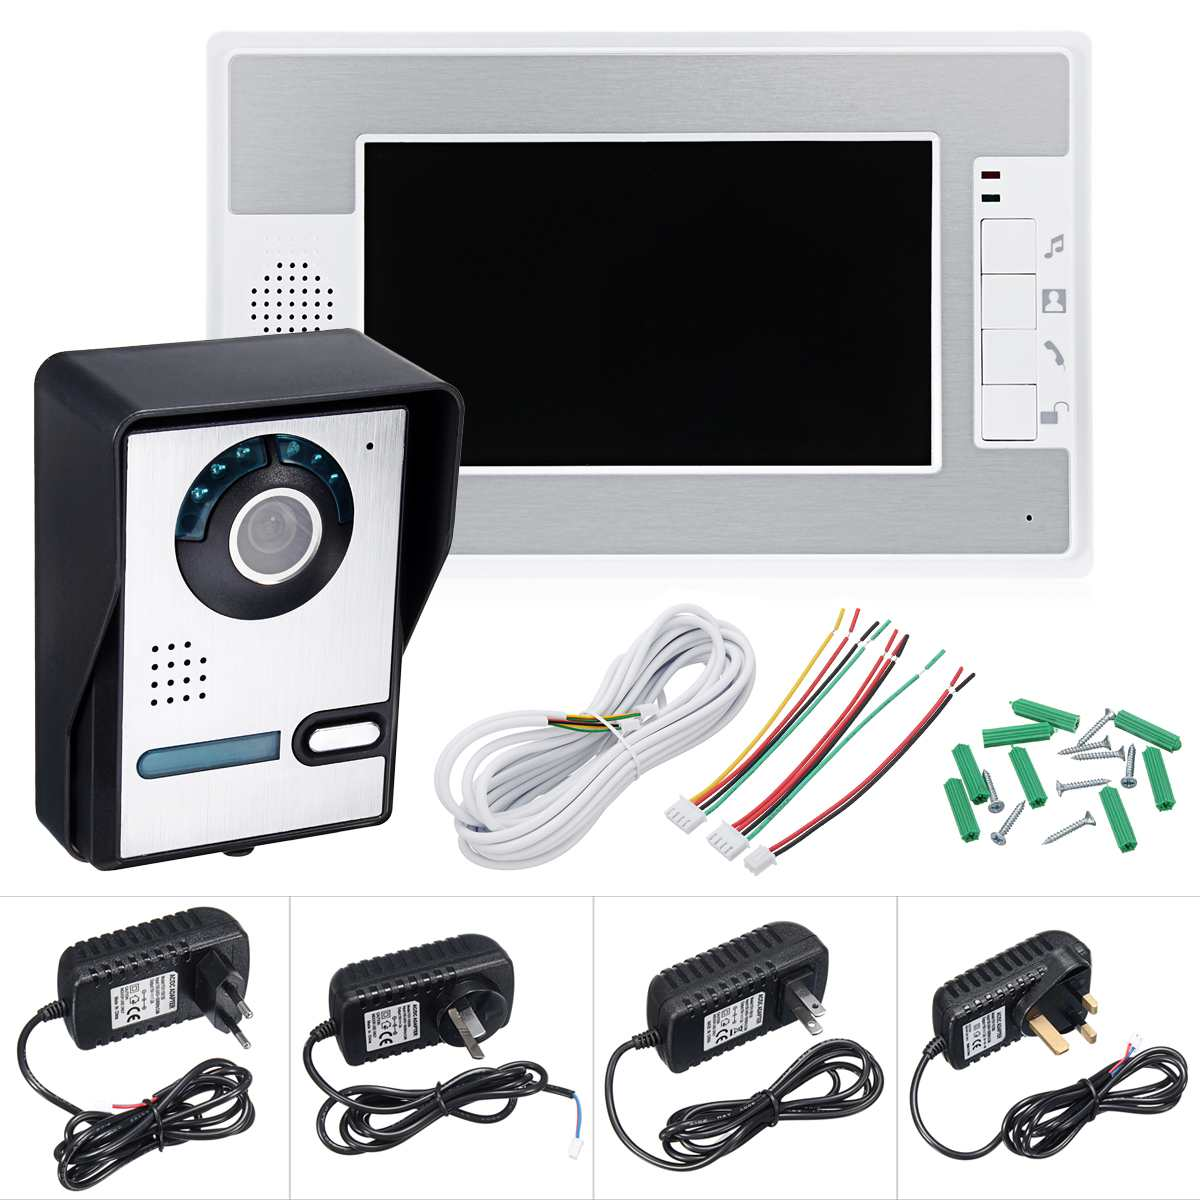 NEW Safurance Wired 7 Video Doorbell One to One Intercom Security System with 1 Monitor Door Intercom Home SafetyNEW Safurance Wired 7 Video Doorbell One to One Intercom Security System with 1 Monitor Door Intercom Home Safety